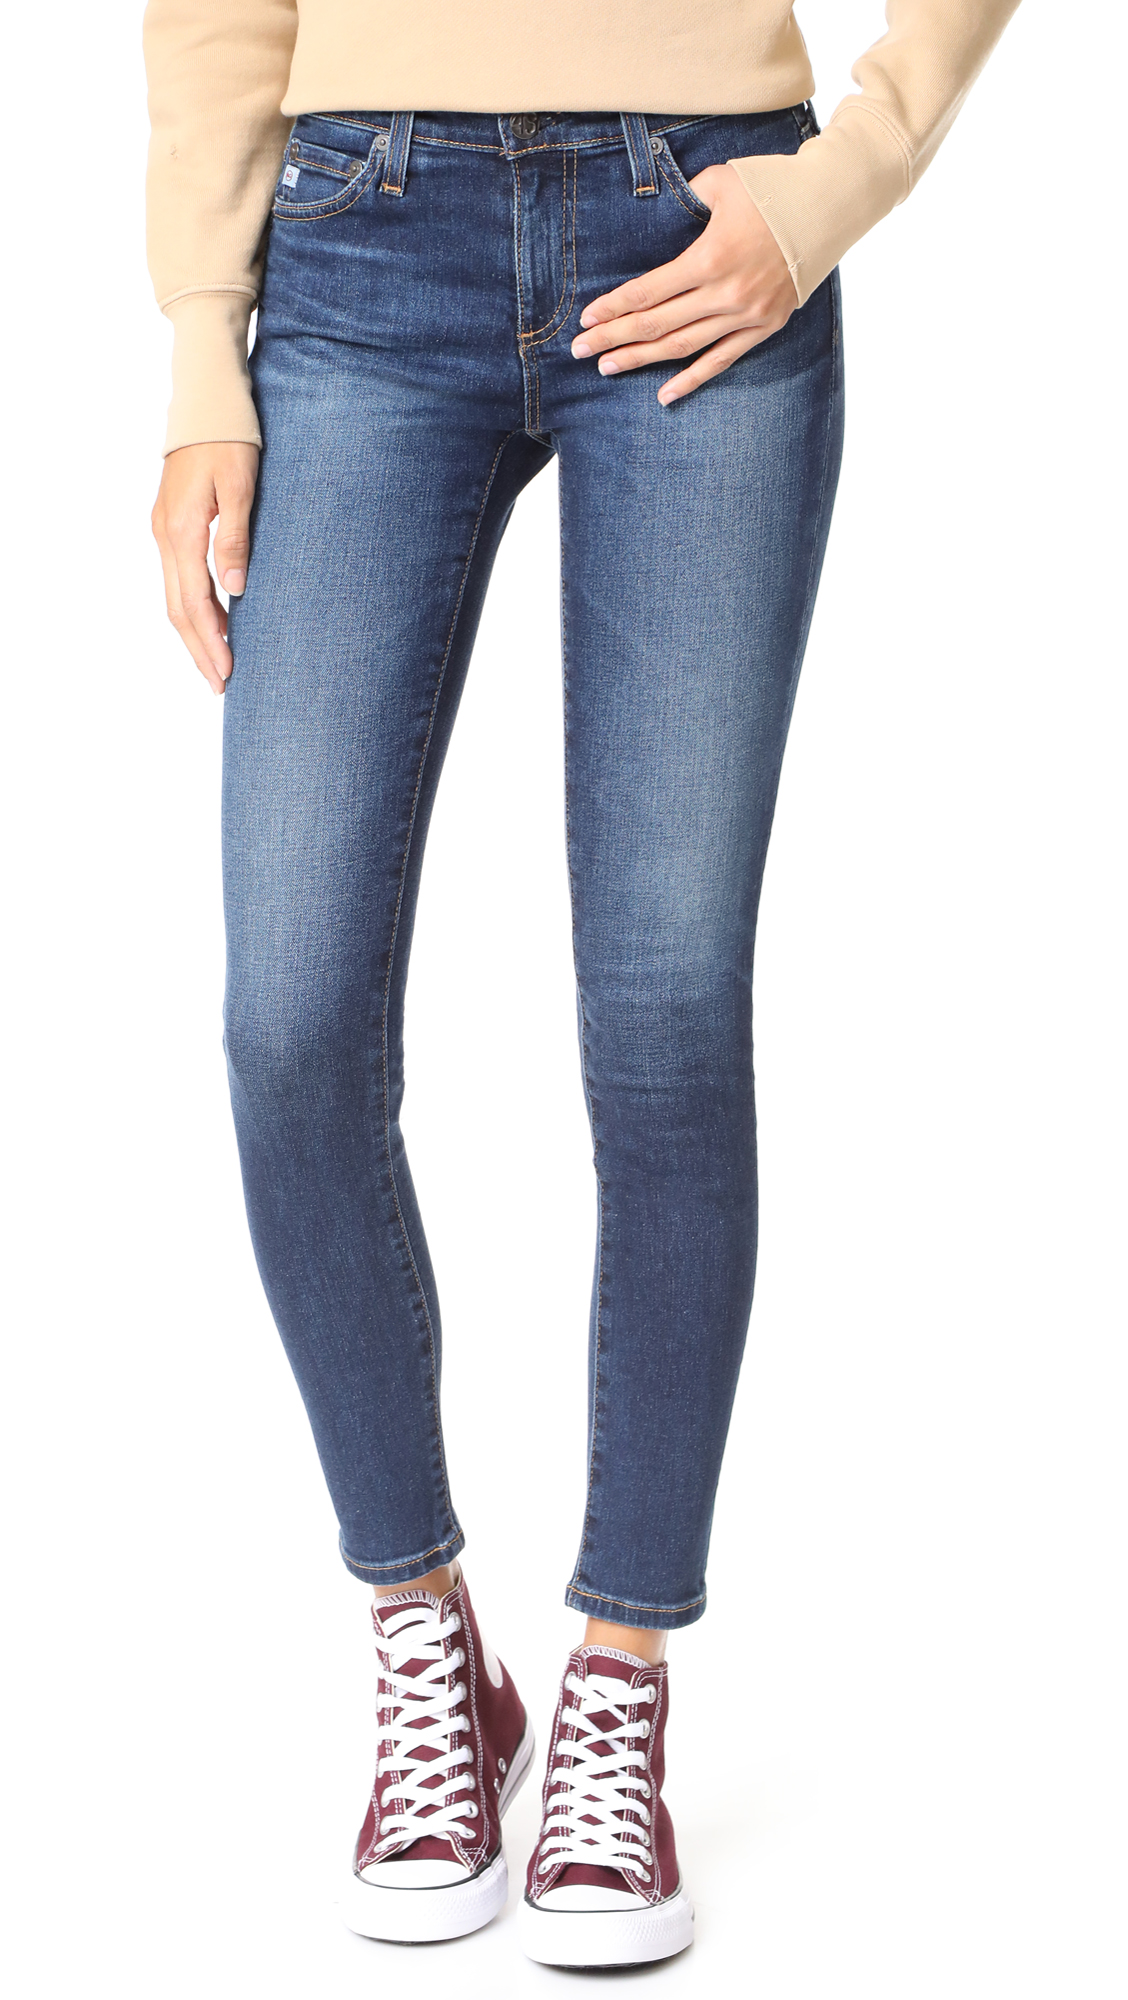 AG The Legging Ankle Jeans - 4 Years Rapids